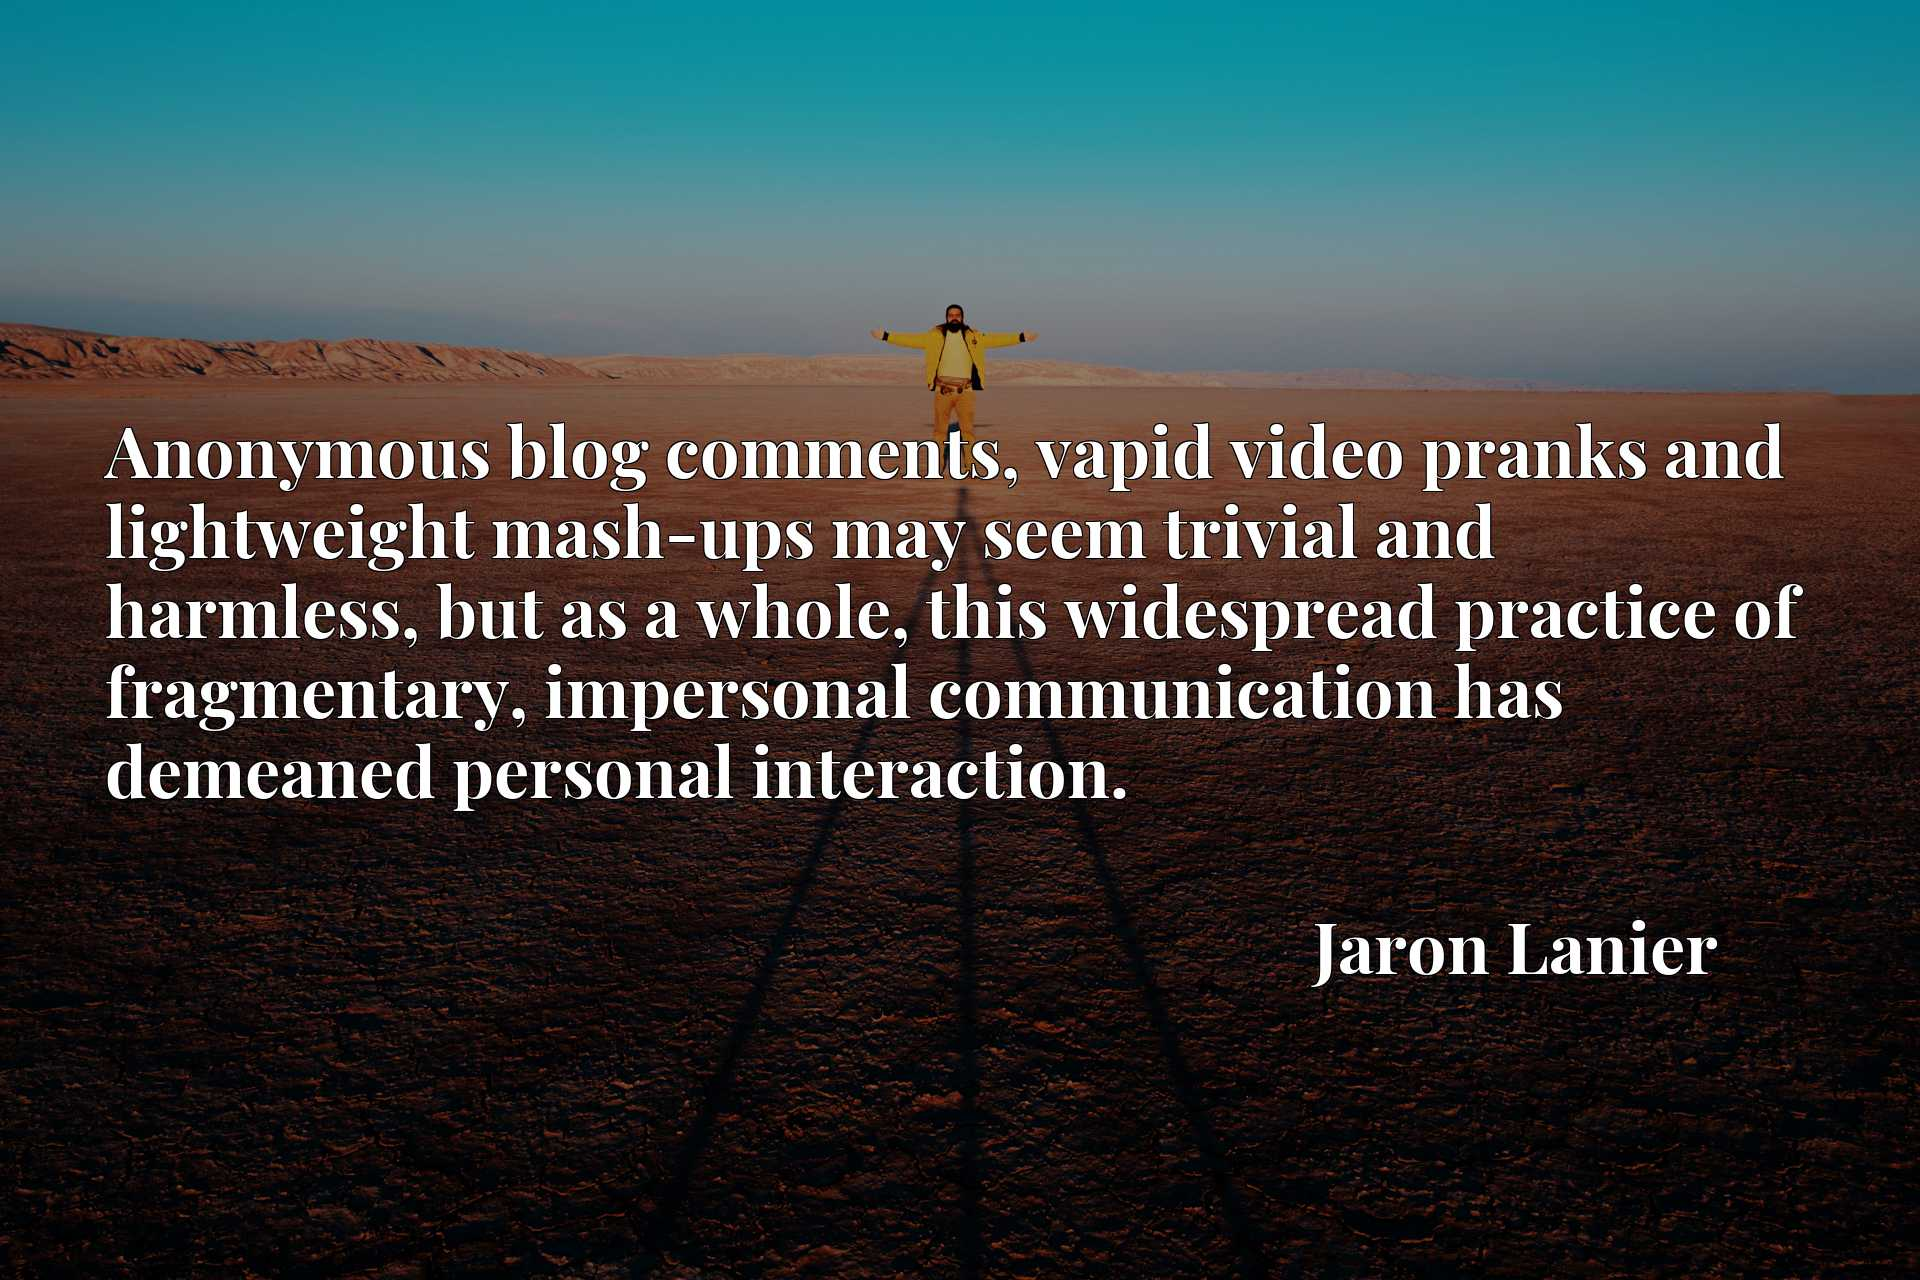 Anonymous blog comments, vapid video pranks and lightweight mash-ups may seem trivial and harmless, but as a whole, this widespread practice of fragmentary, impersonal communication has demeaned personal interaction.